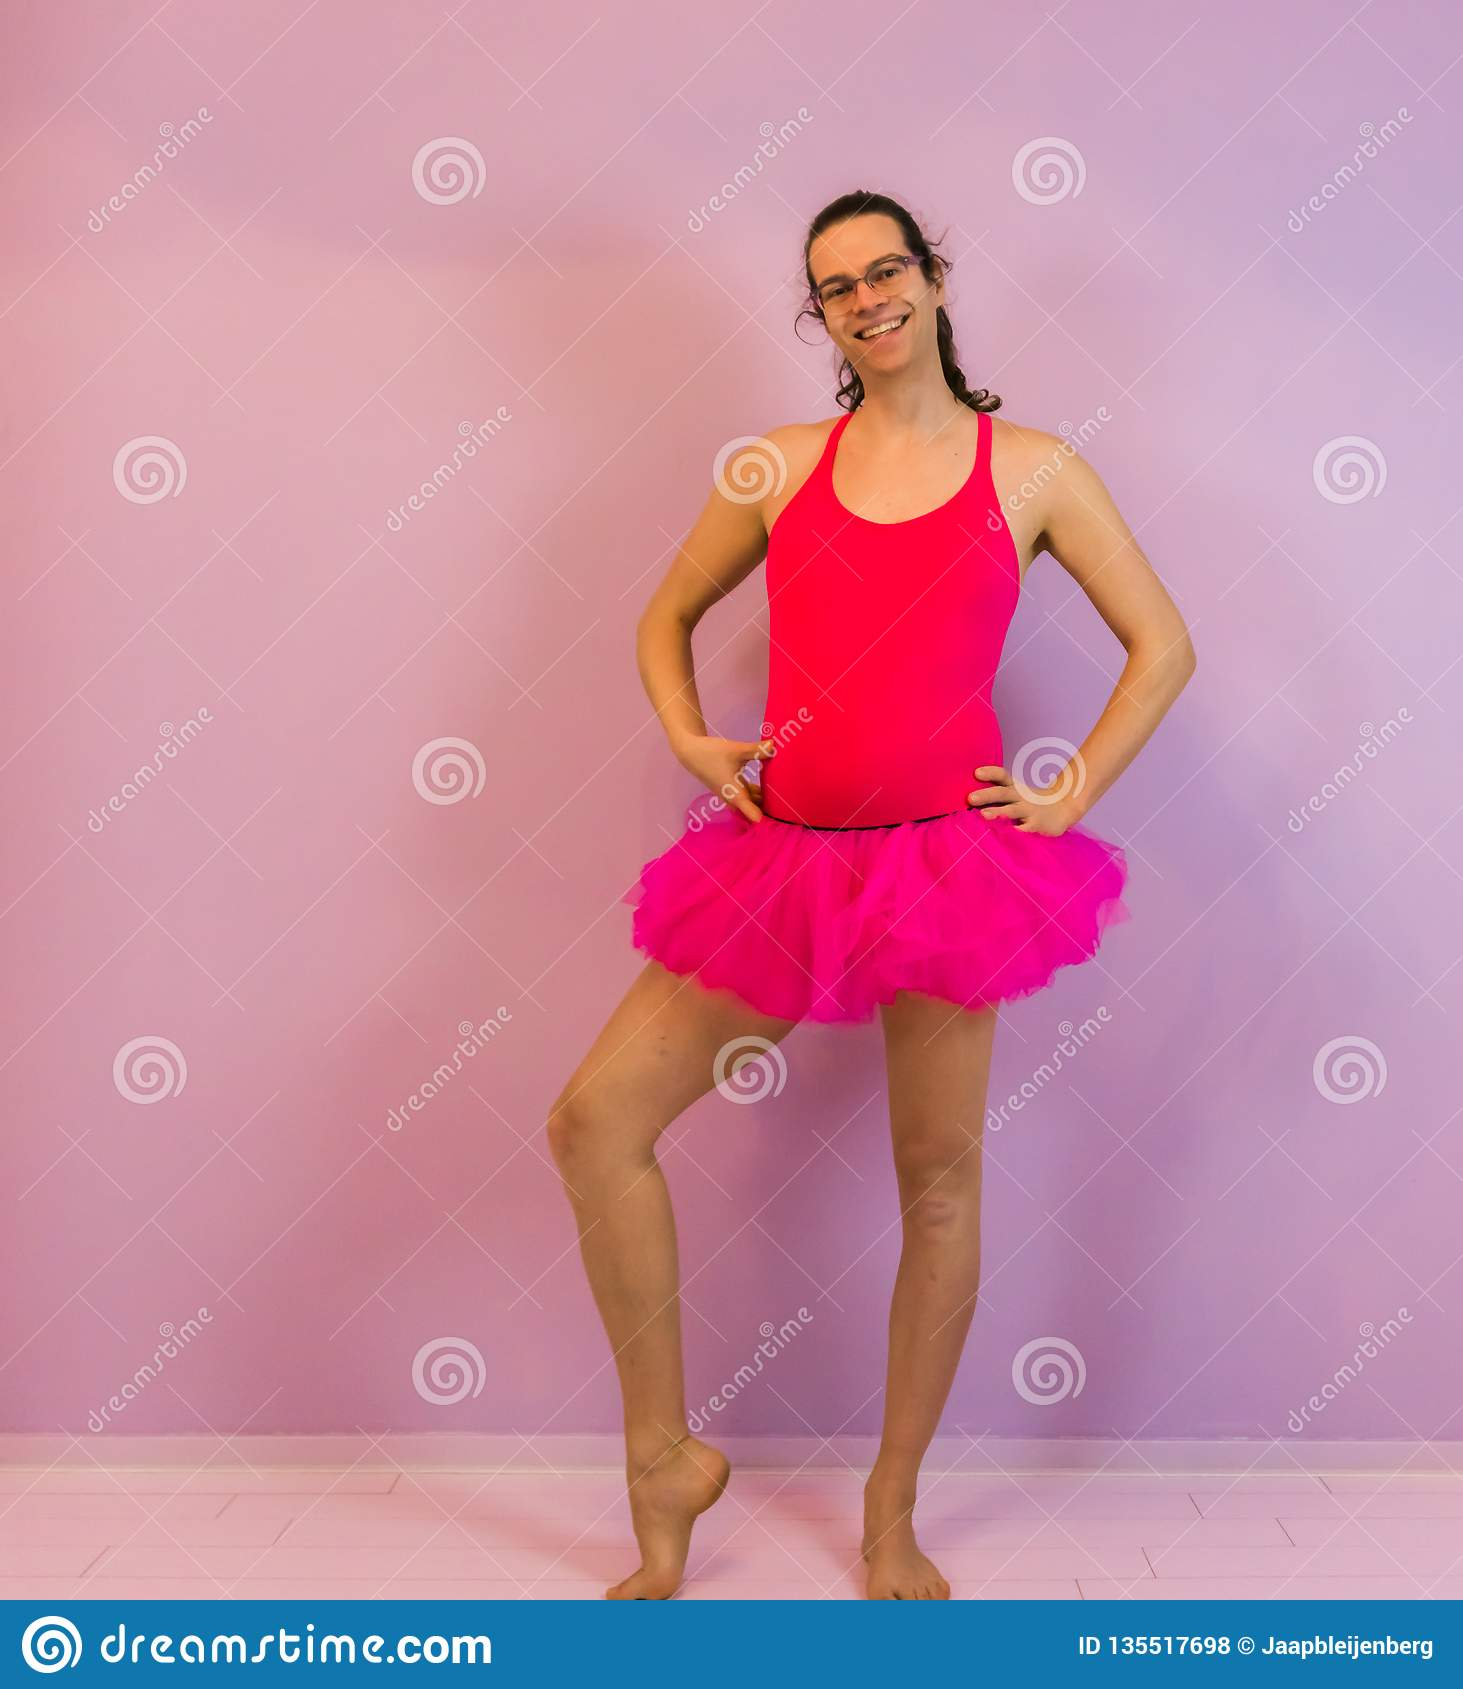 56de13c244e53c LGBT concept, Young transgender girl posing in a pink girly tutu, portrait  of a ballerina. More similar stock images